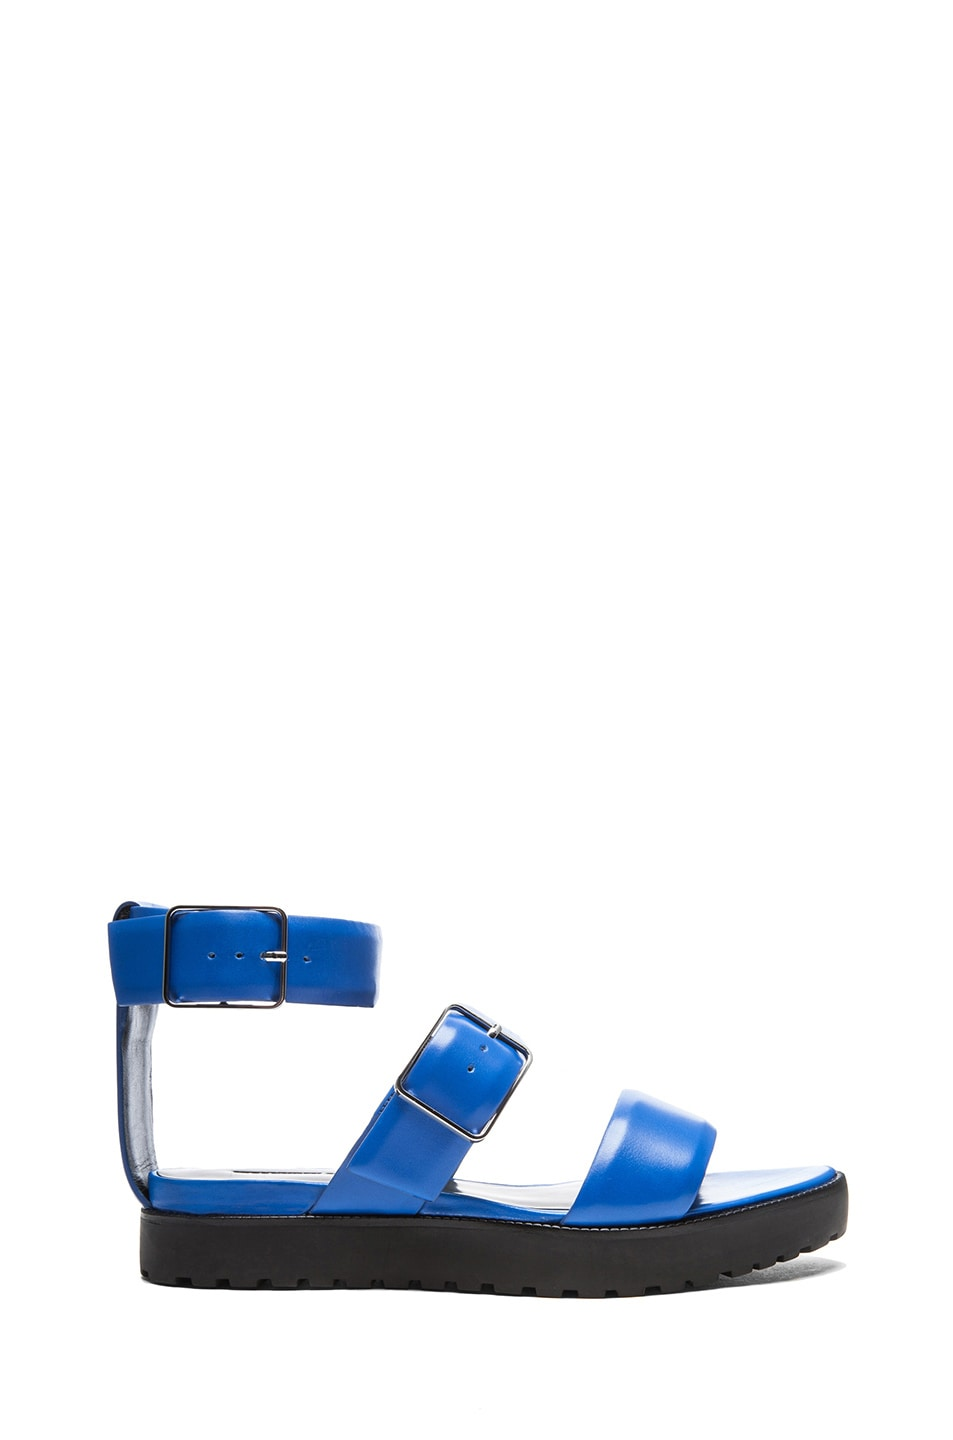 Image 1 of Alexander Wang Kira Leather Ankle Strap Sandals in Curacao